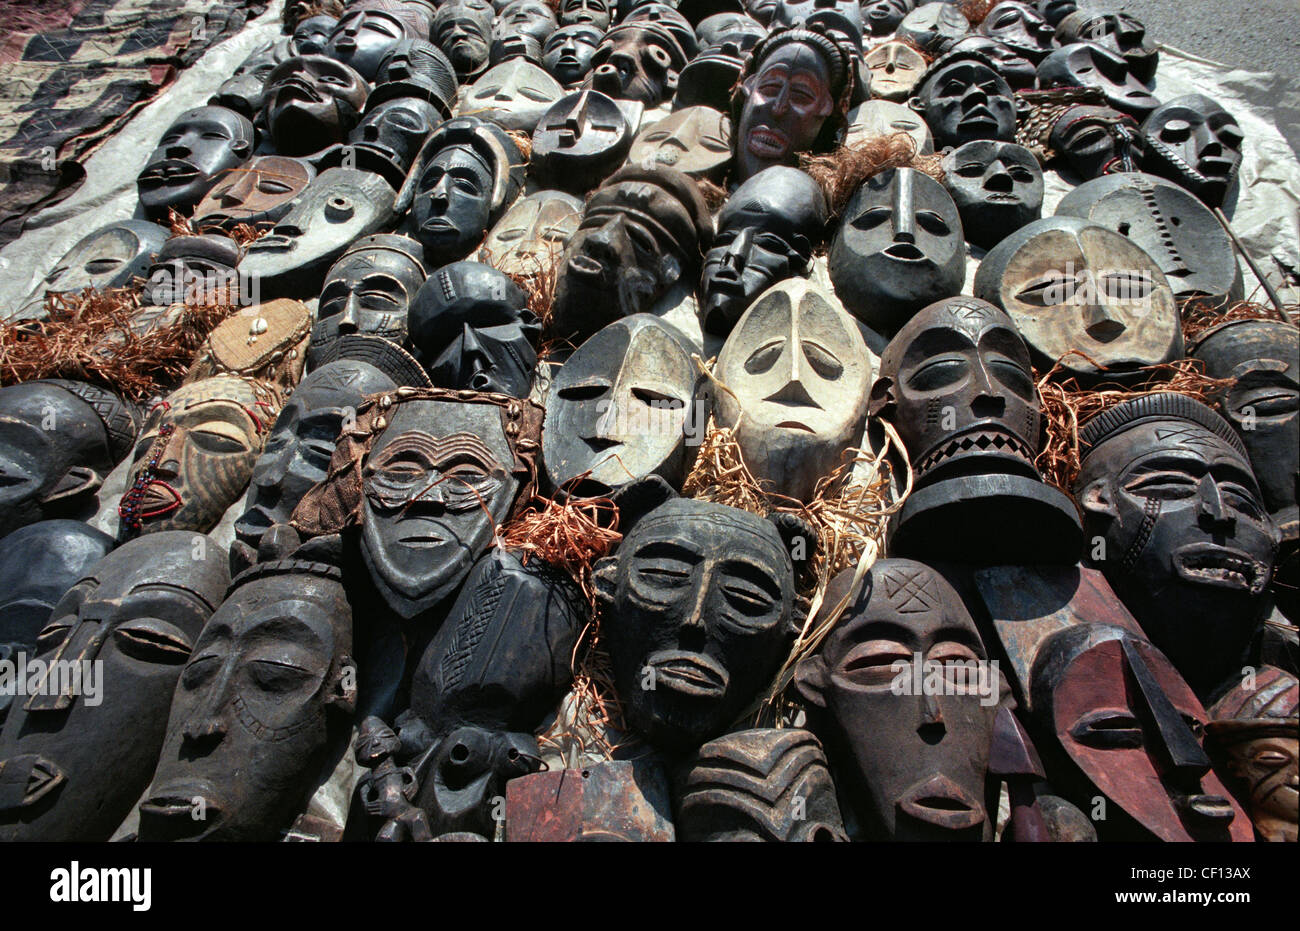 Carved wooden tribal masks on sale in an open air market in Johannesburg, South Africa in 1996 - Stock Image